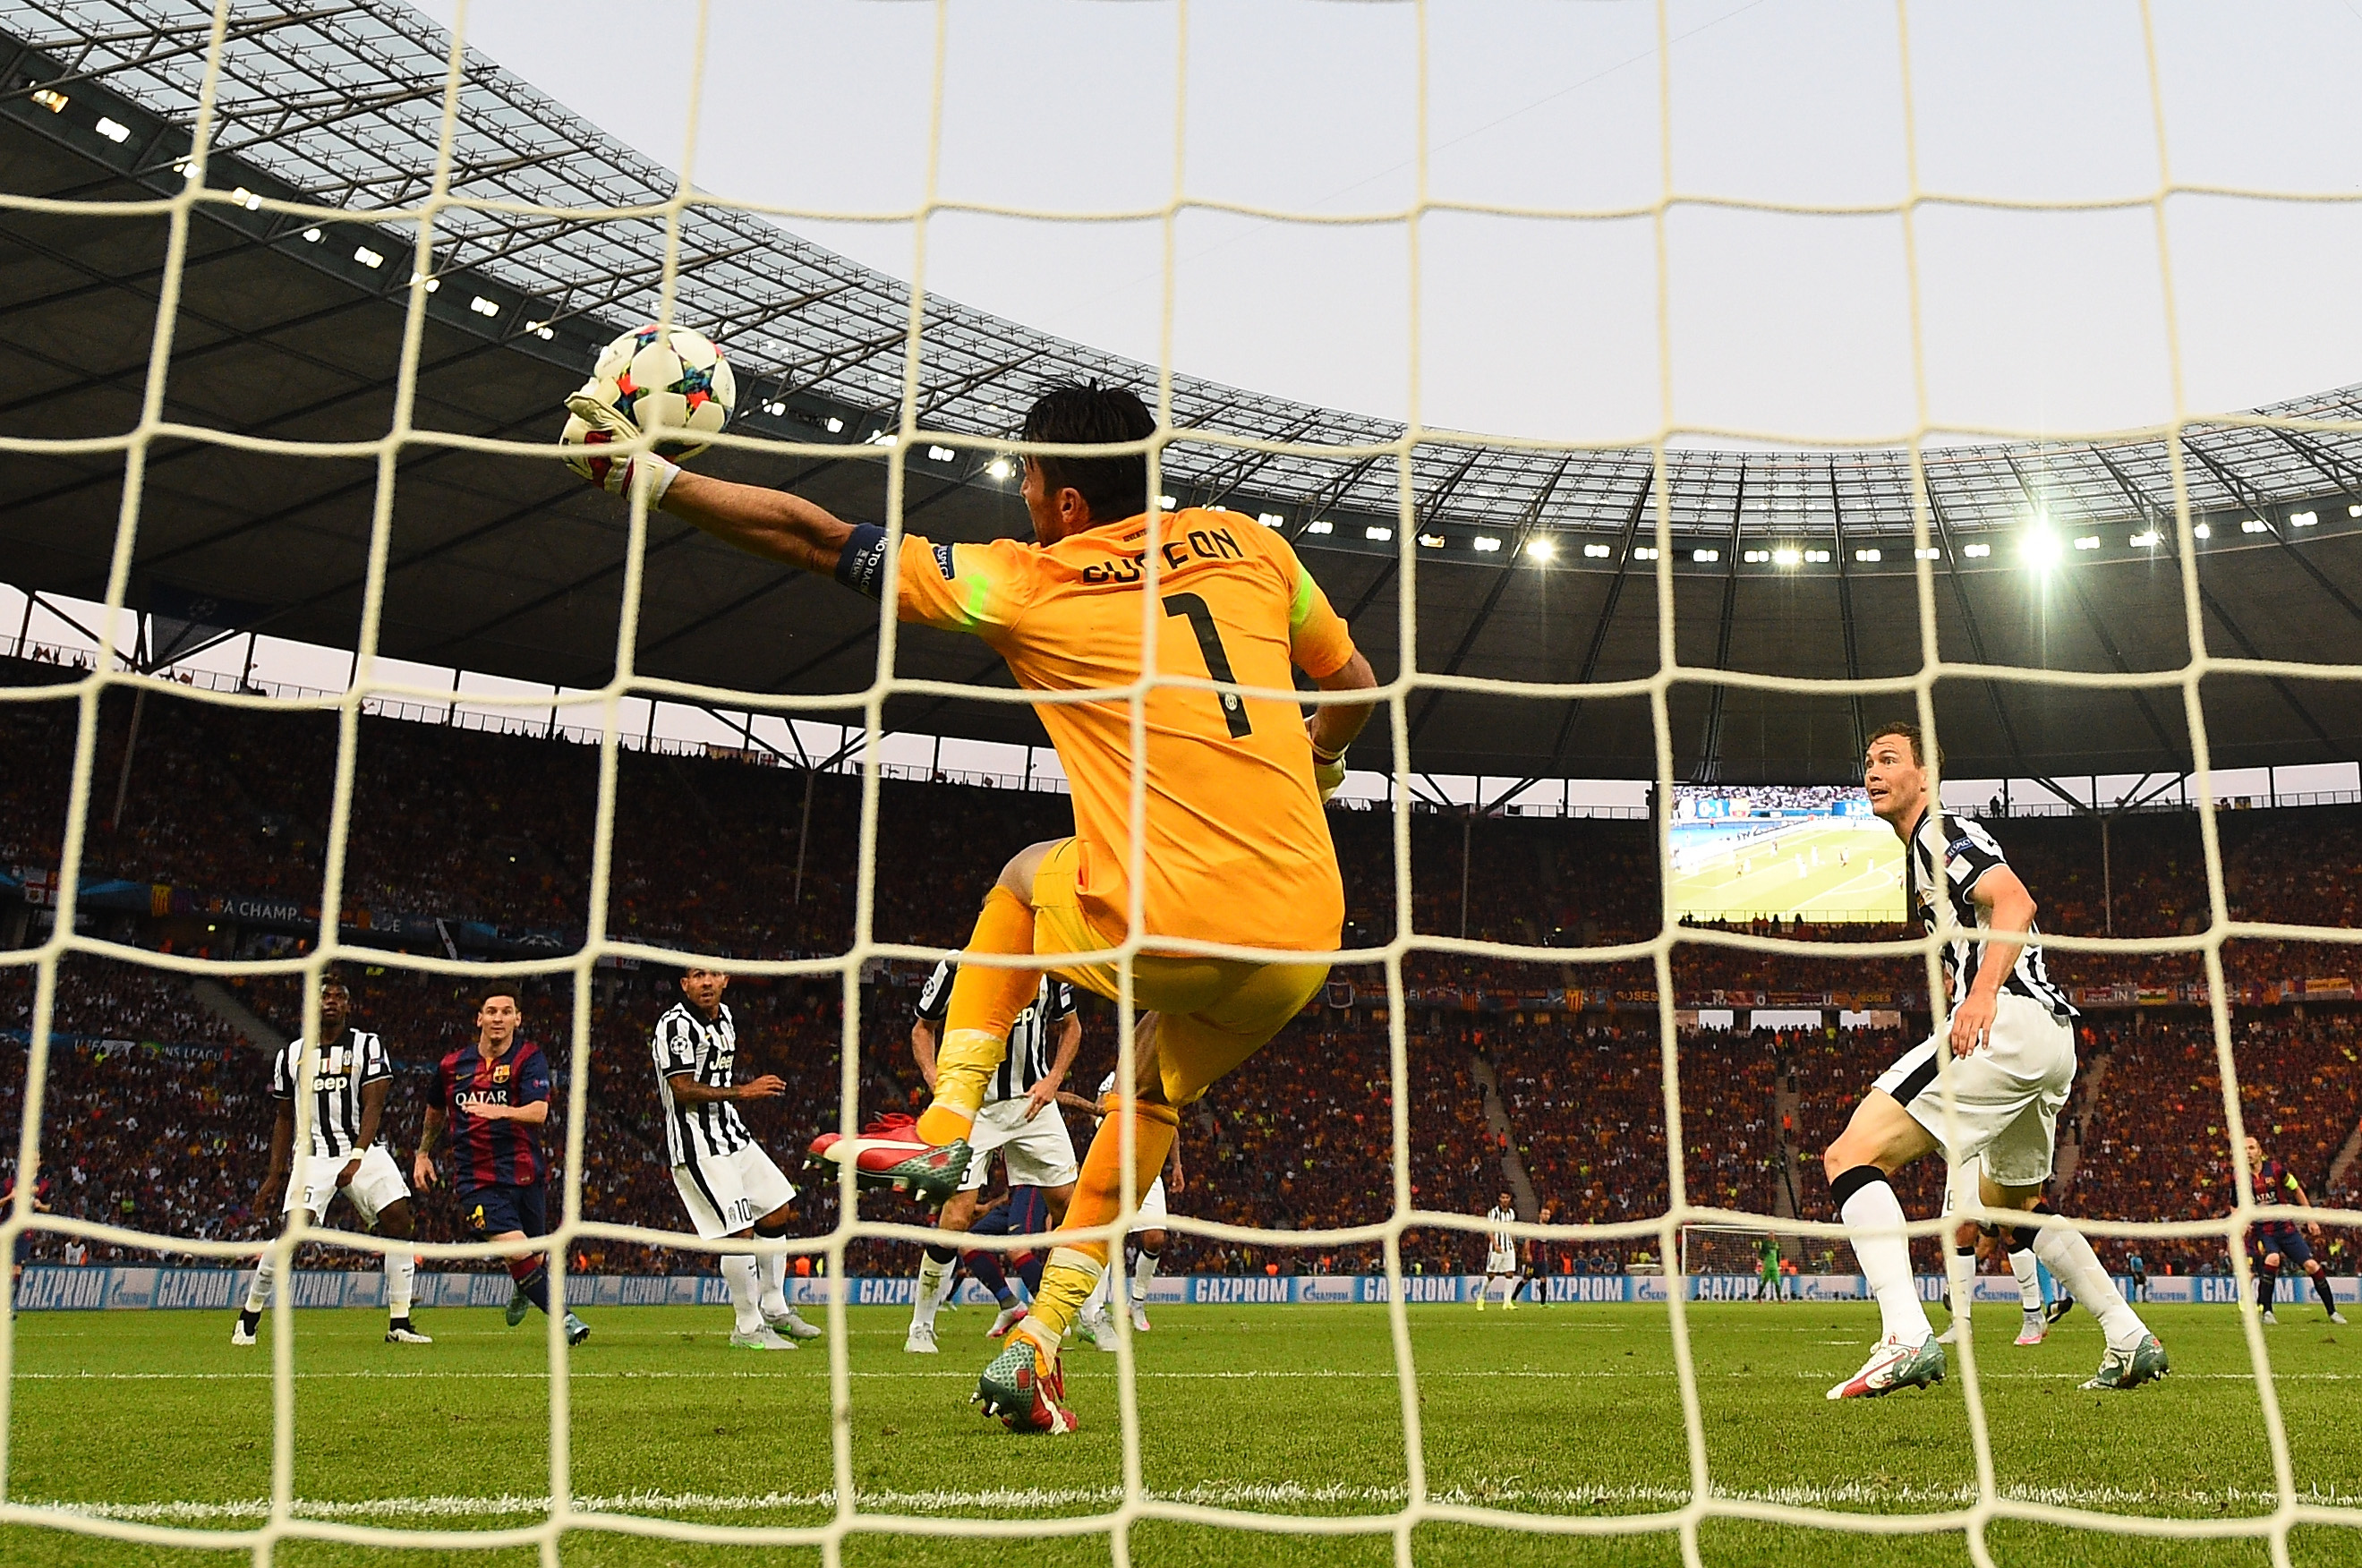 Hint: This somewhat good save might be discussed below.